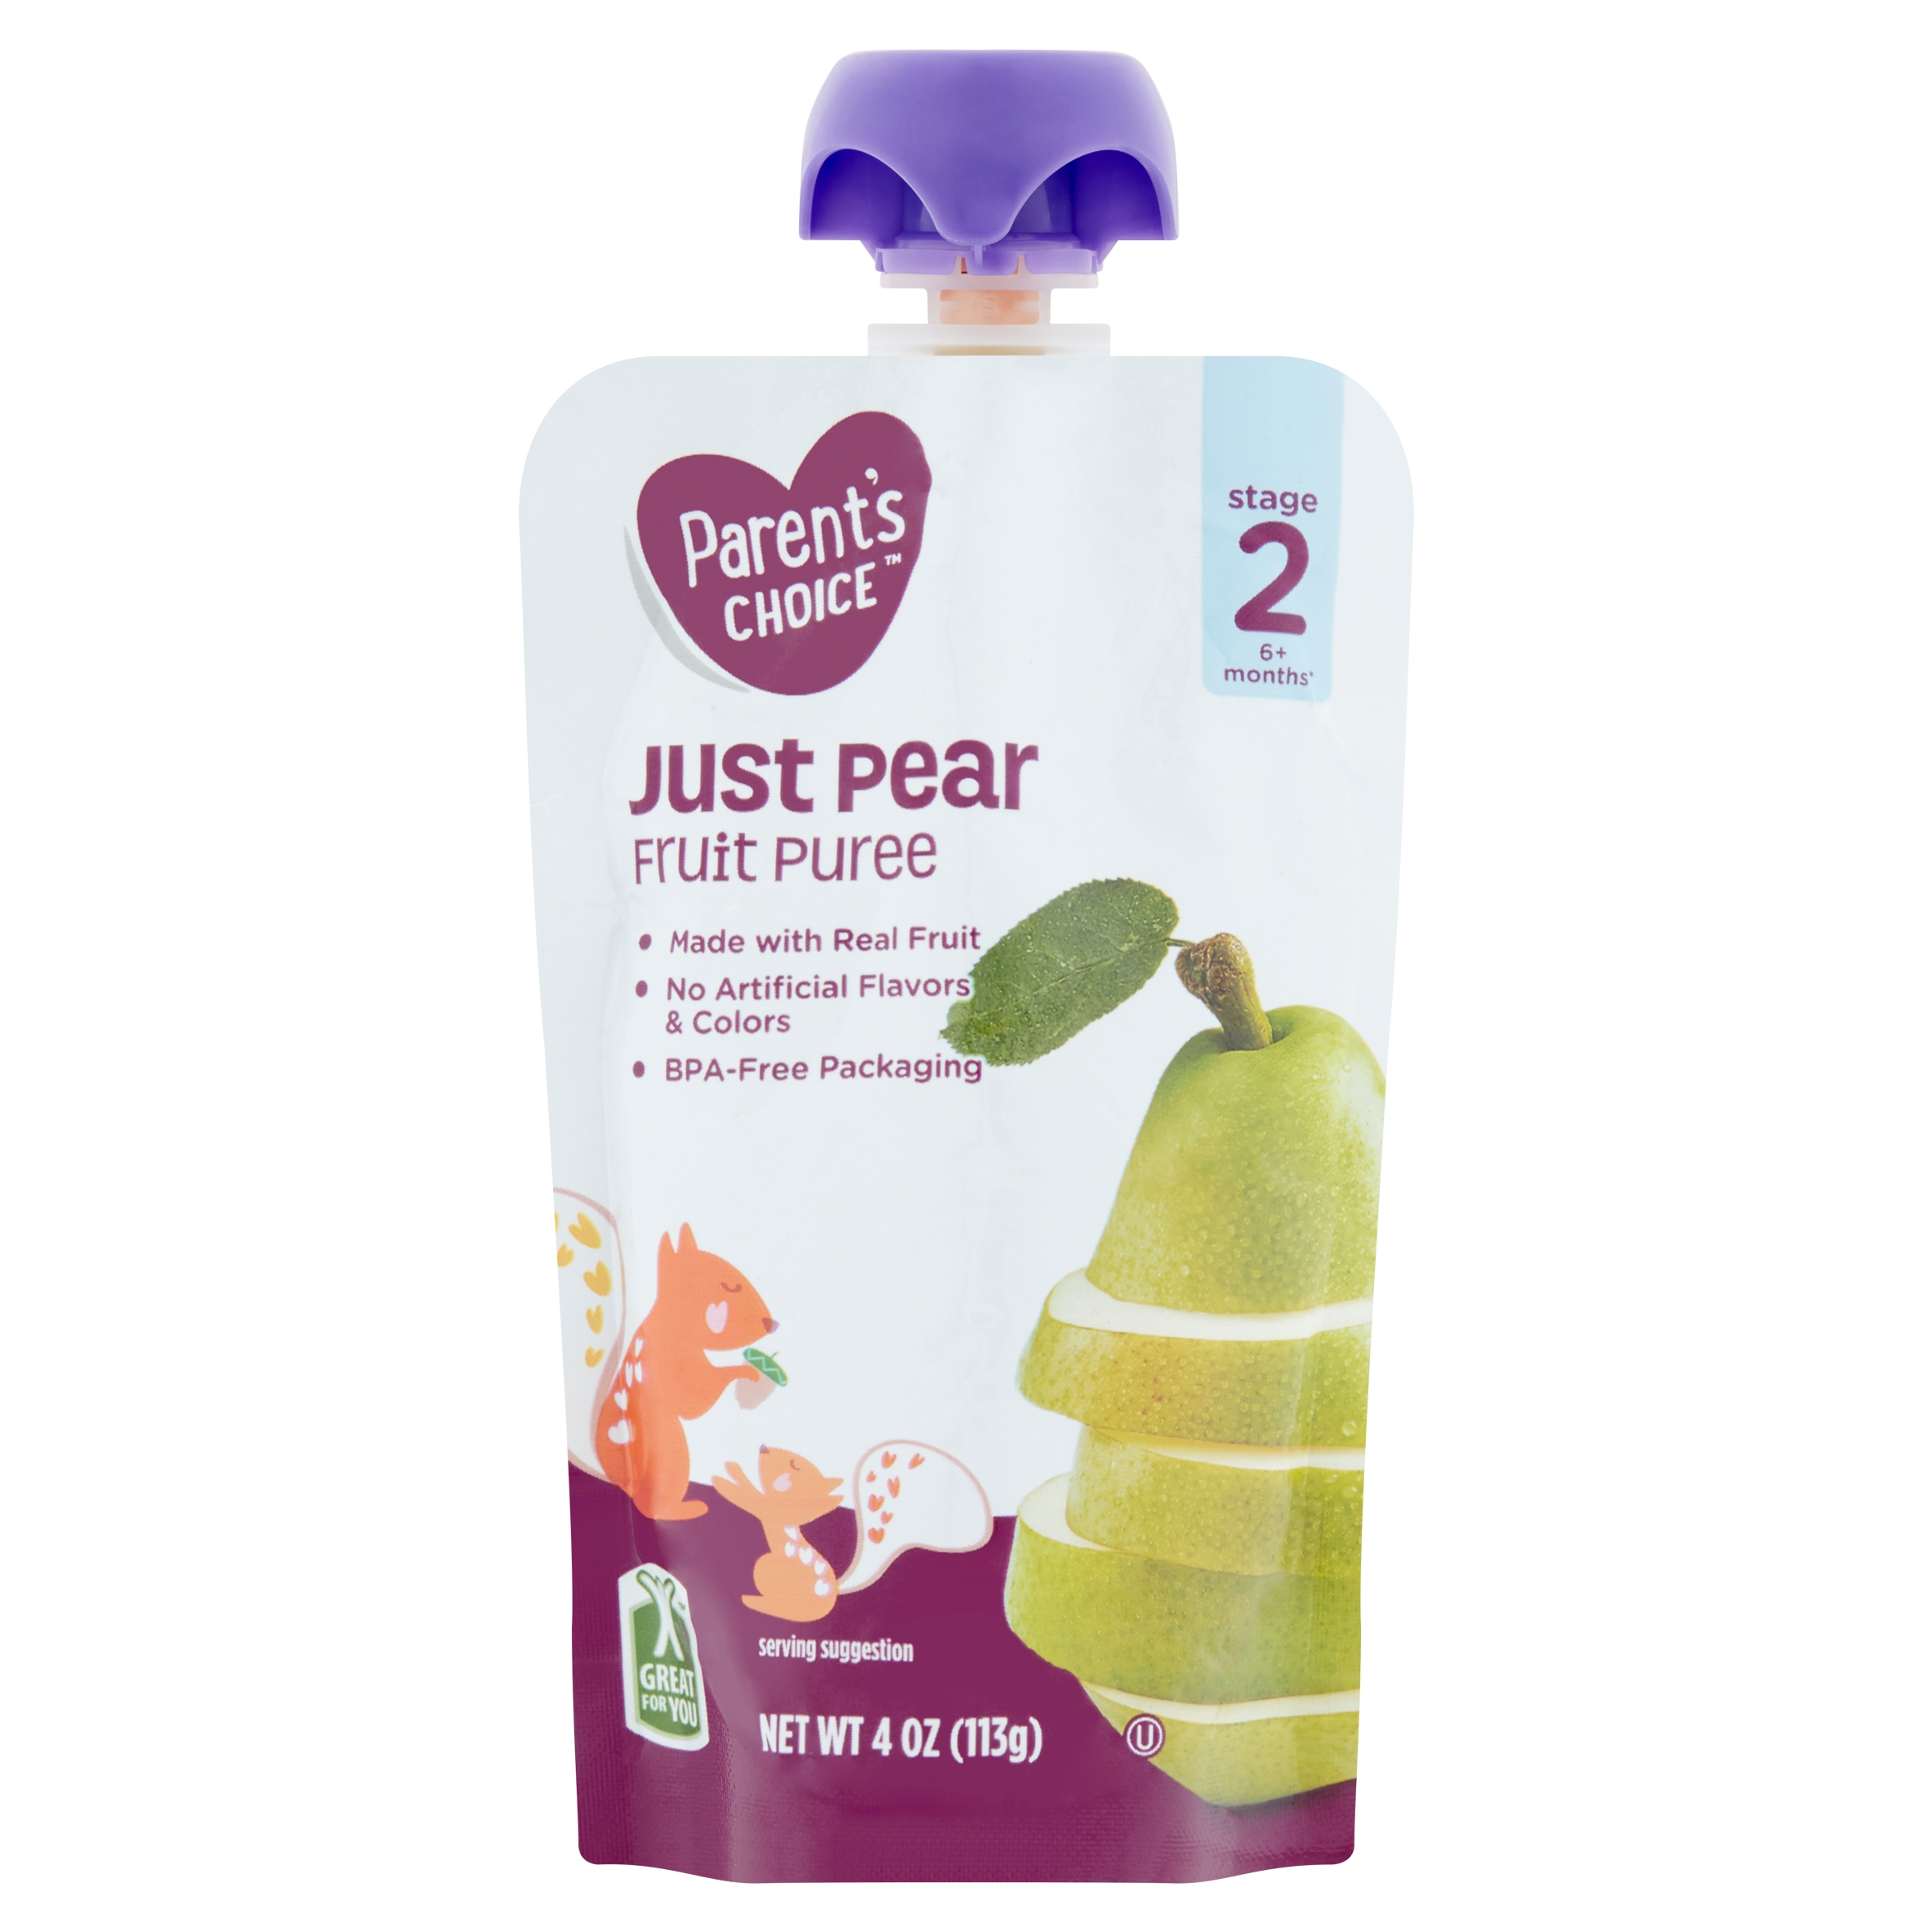 Parent's Choice Just Pear, Stage 2, 4 oz Pouch